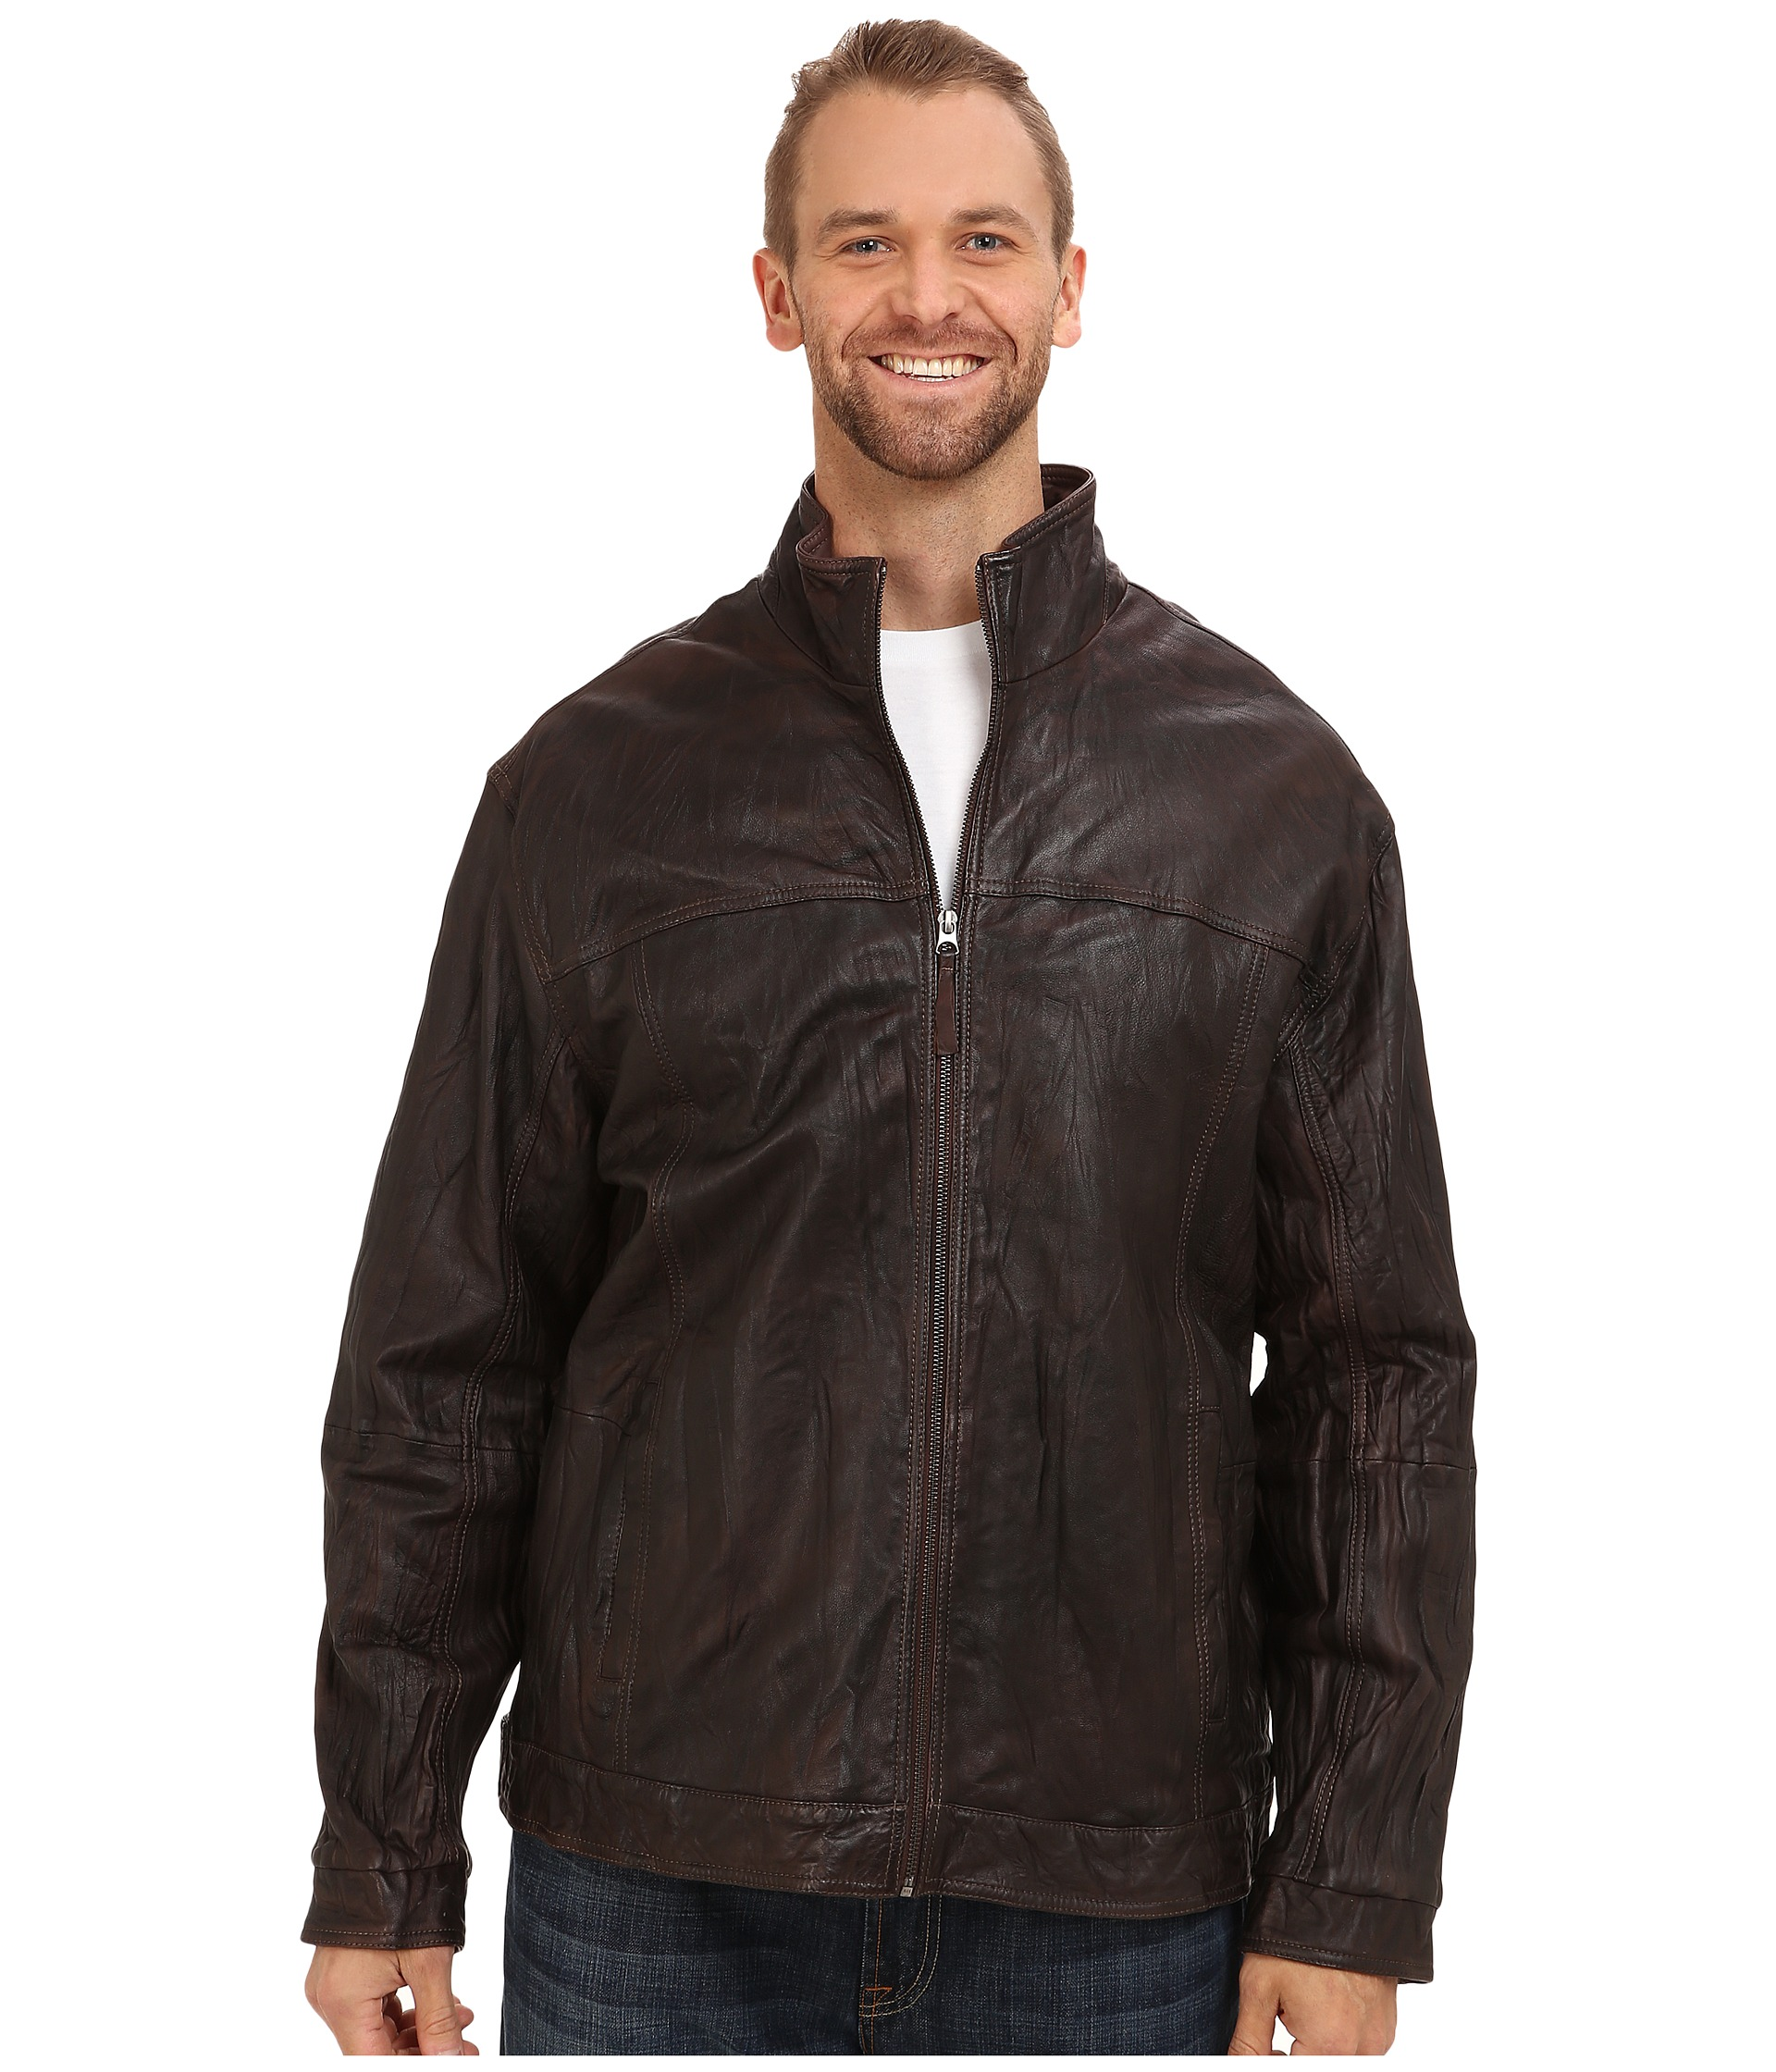 Tommy Bahama Big & Tall Big & Tall Sunset Rider Leather Jacket $325.99 (55% off MSRP $725.00